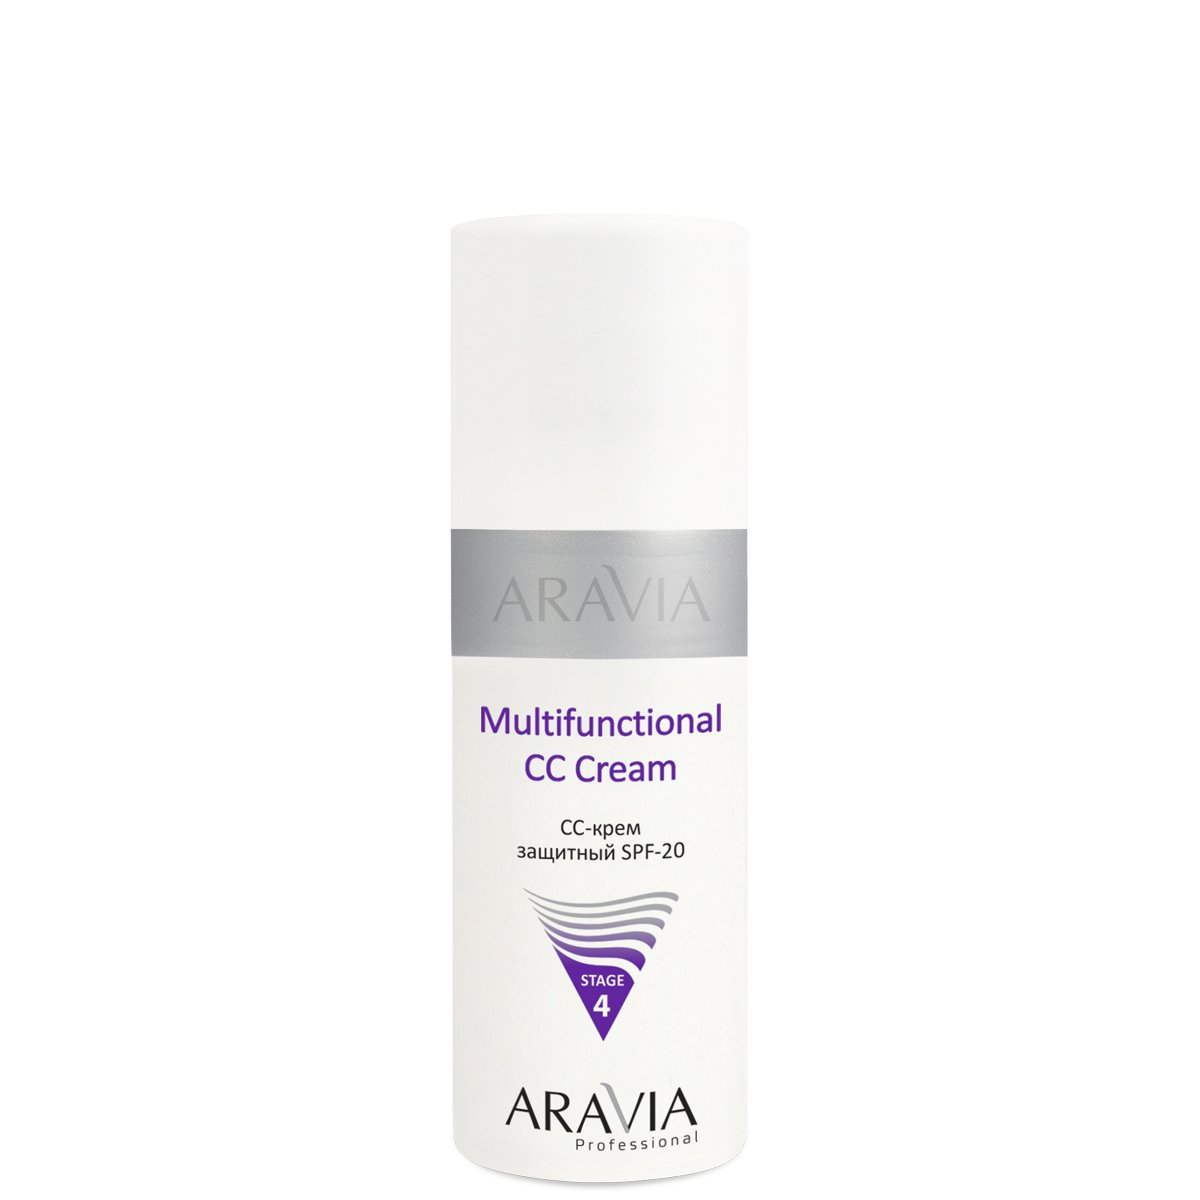 Aravia Multifunctional CC Cream CC-крем защитный SPF-20 (150 ml) 6105